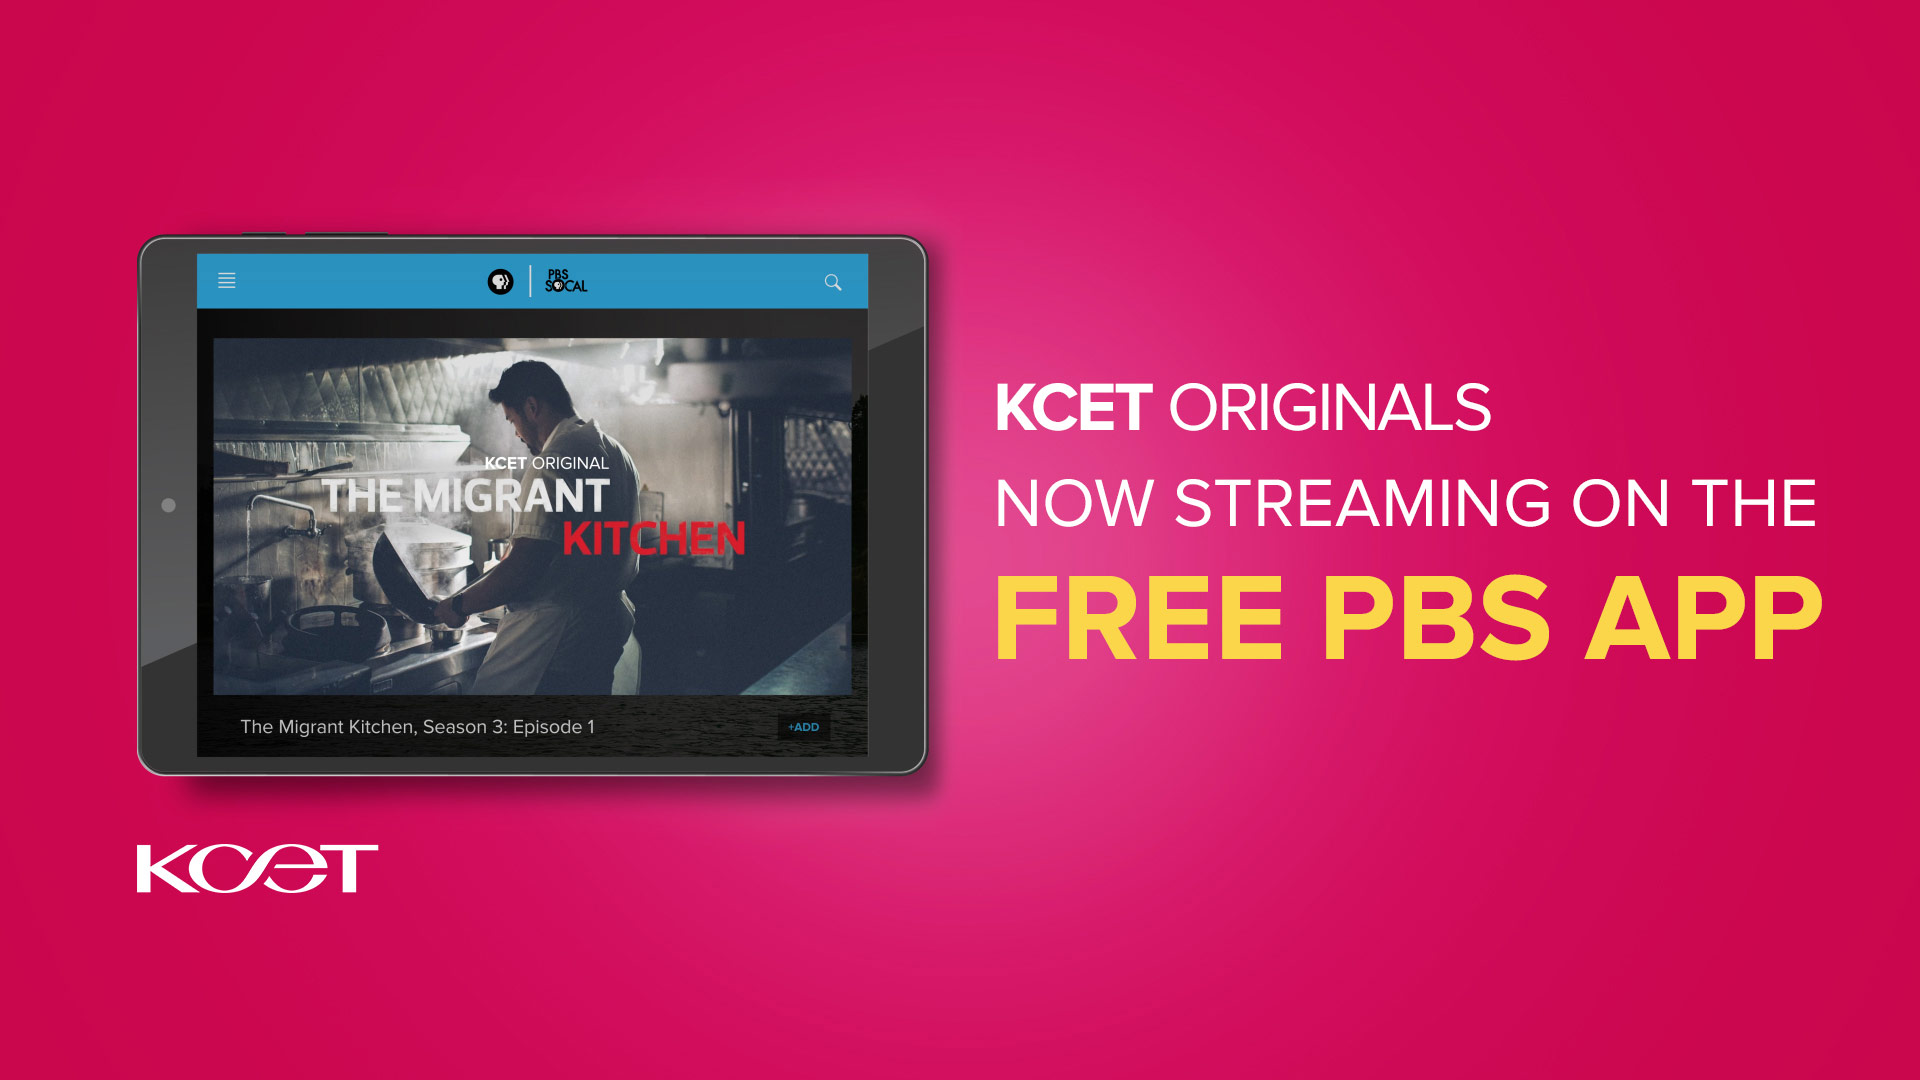 KCET Originals - Now Streaming on the Free PBS App